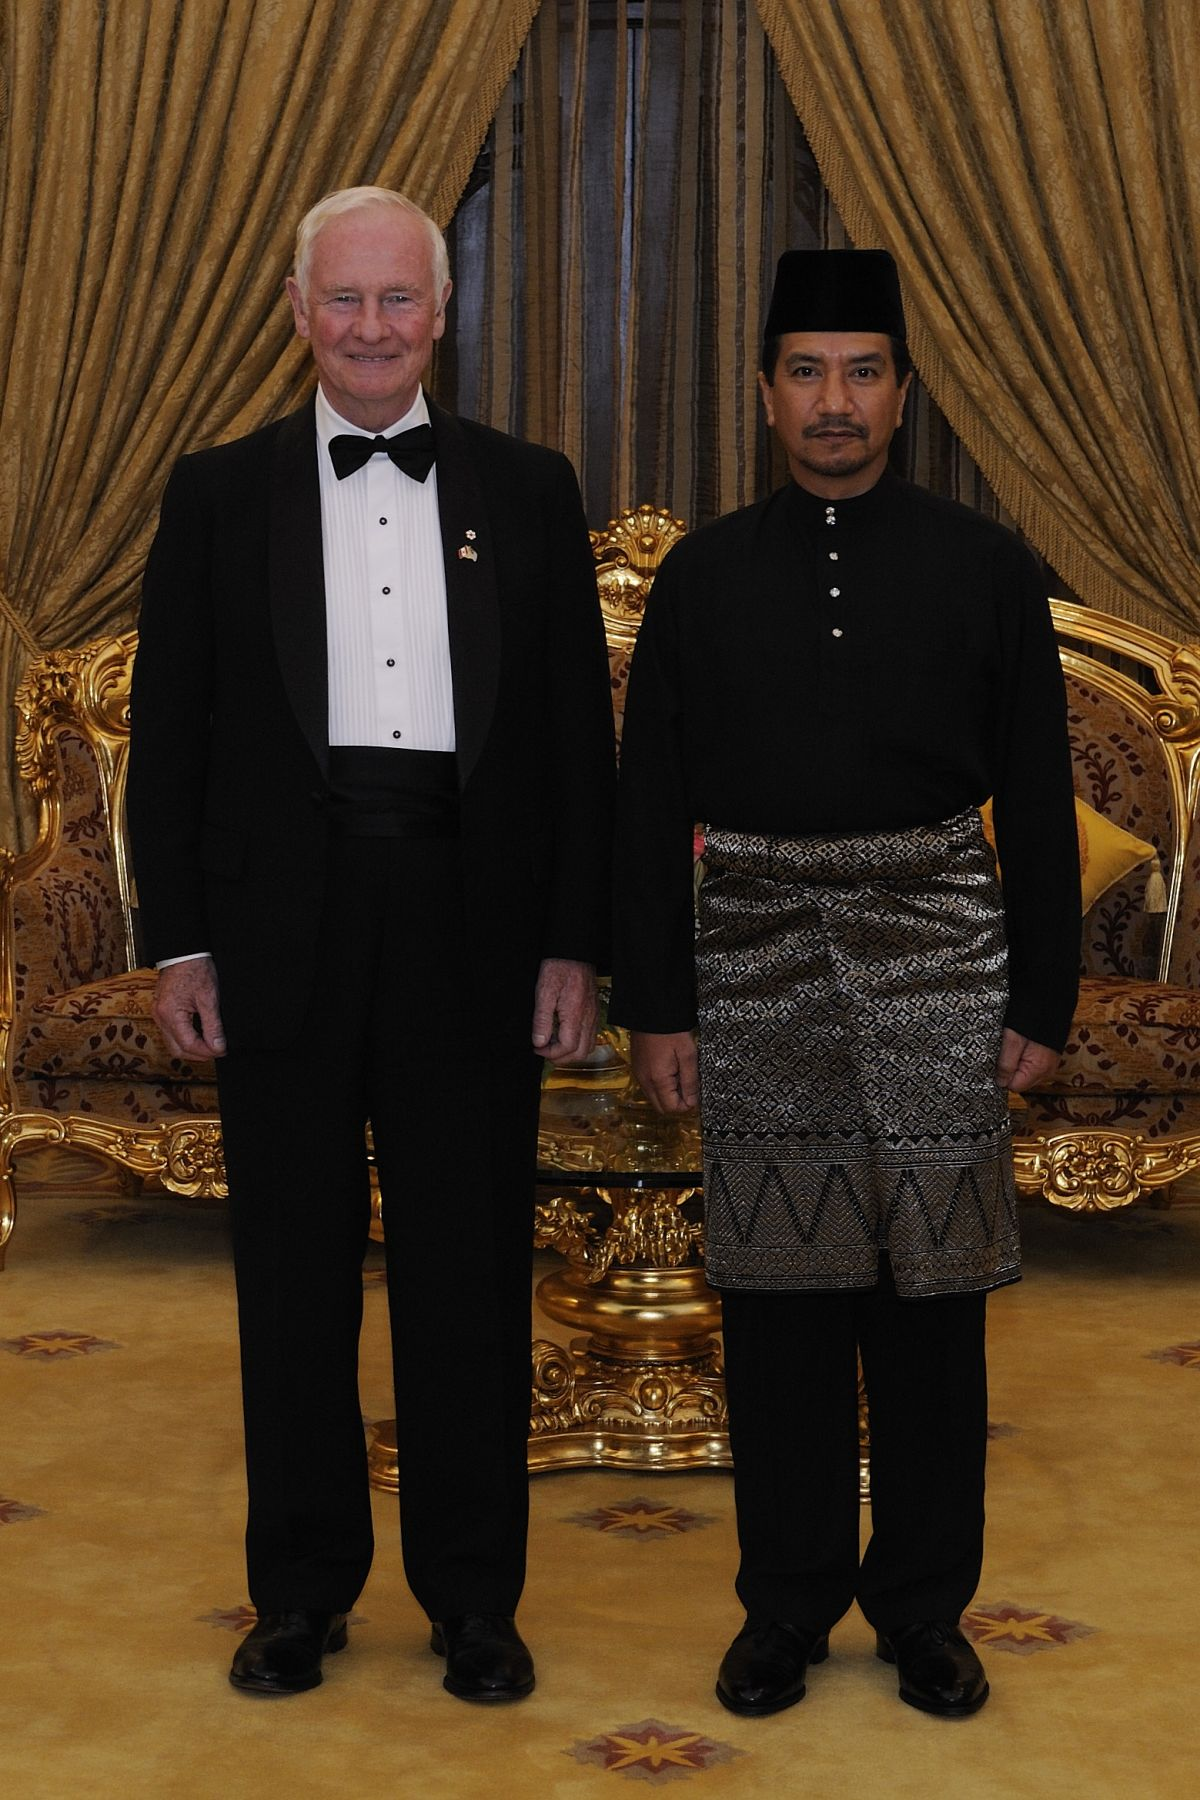 In the evening, His Excellency had an audience His Majesty The Yang di-Pertuan Agong, King of Malaysia, at the Istana Negara (Royal Palace).